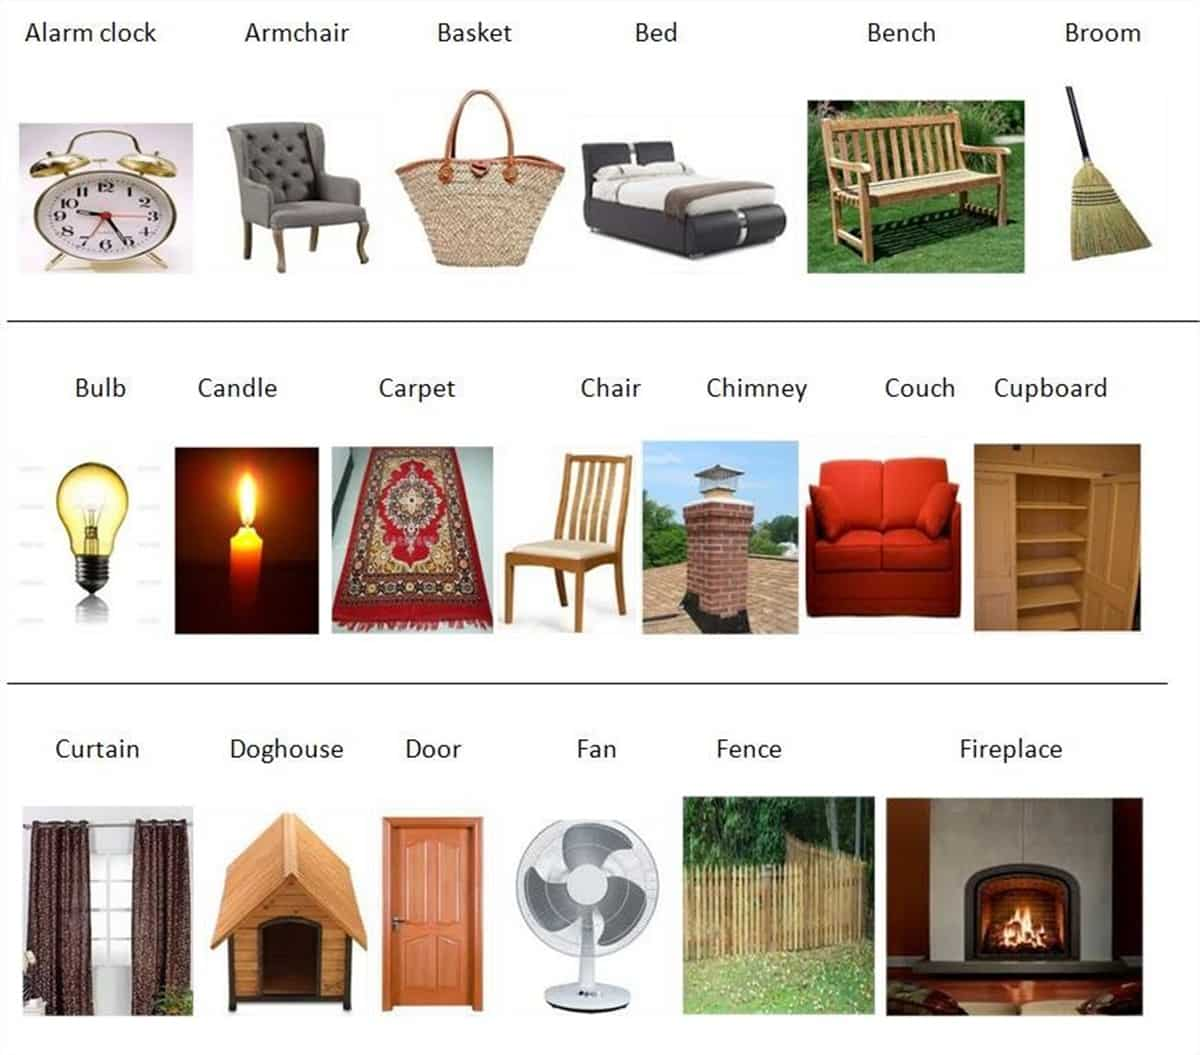 Furniture Vocabulary 250 Items Illustrated Esl Buzz